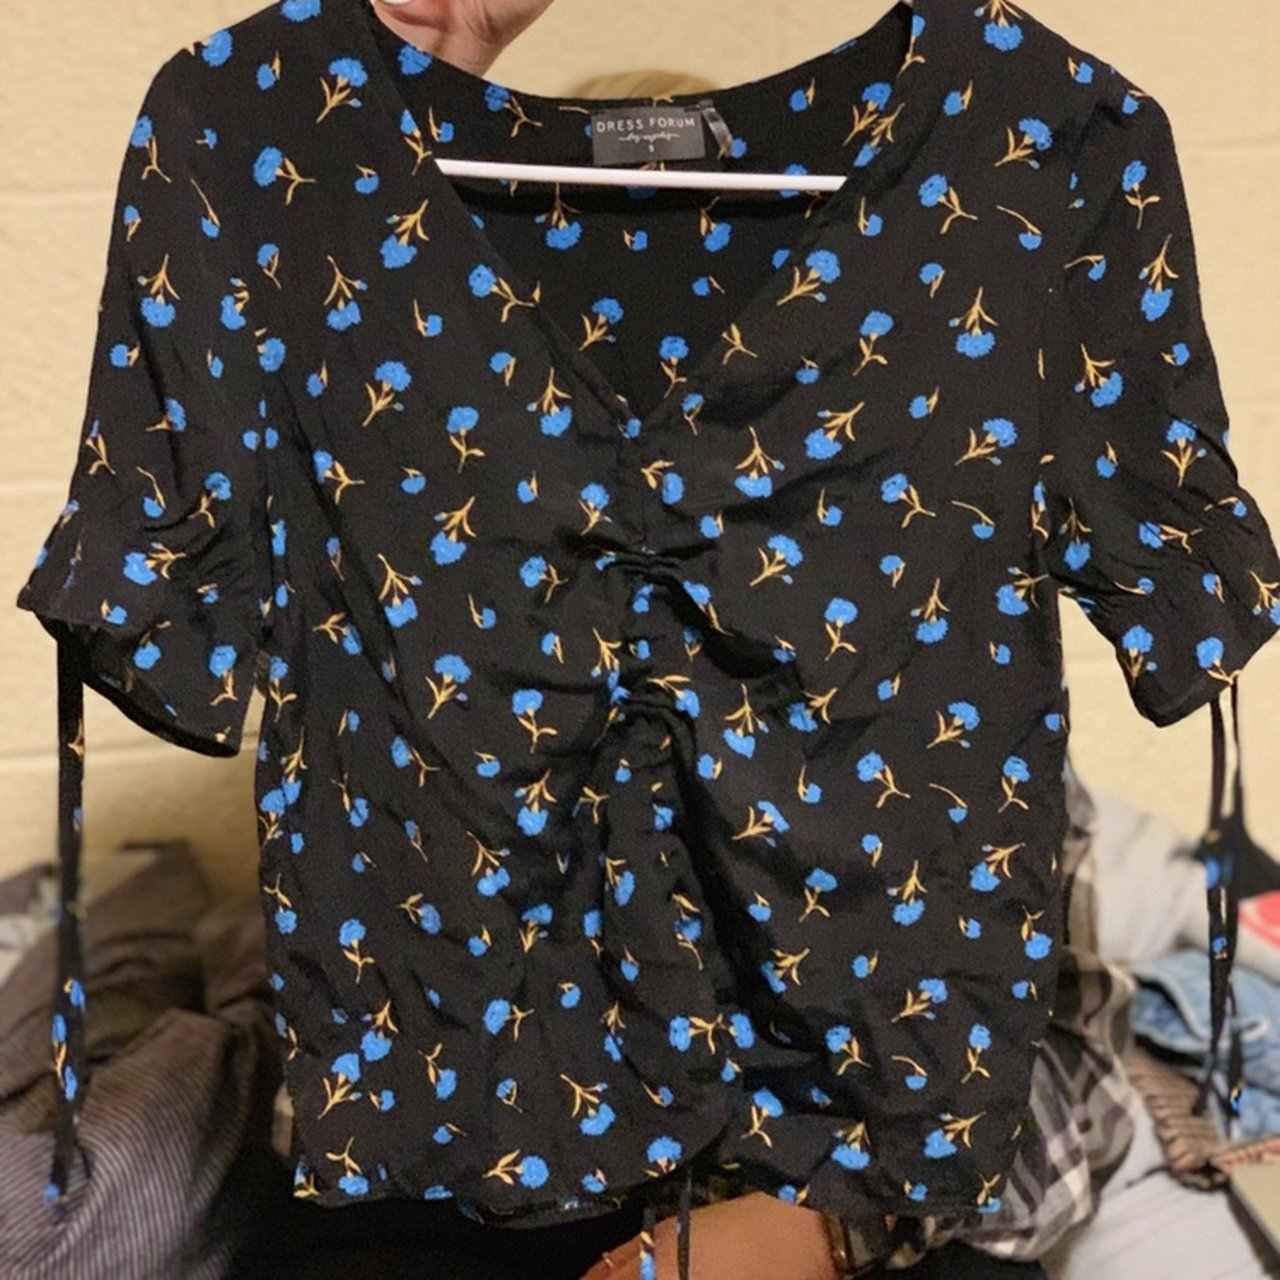 821ace3b30fc6b Black girly floral top from